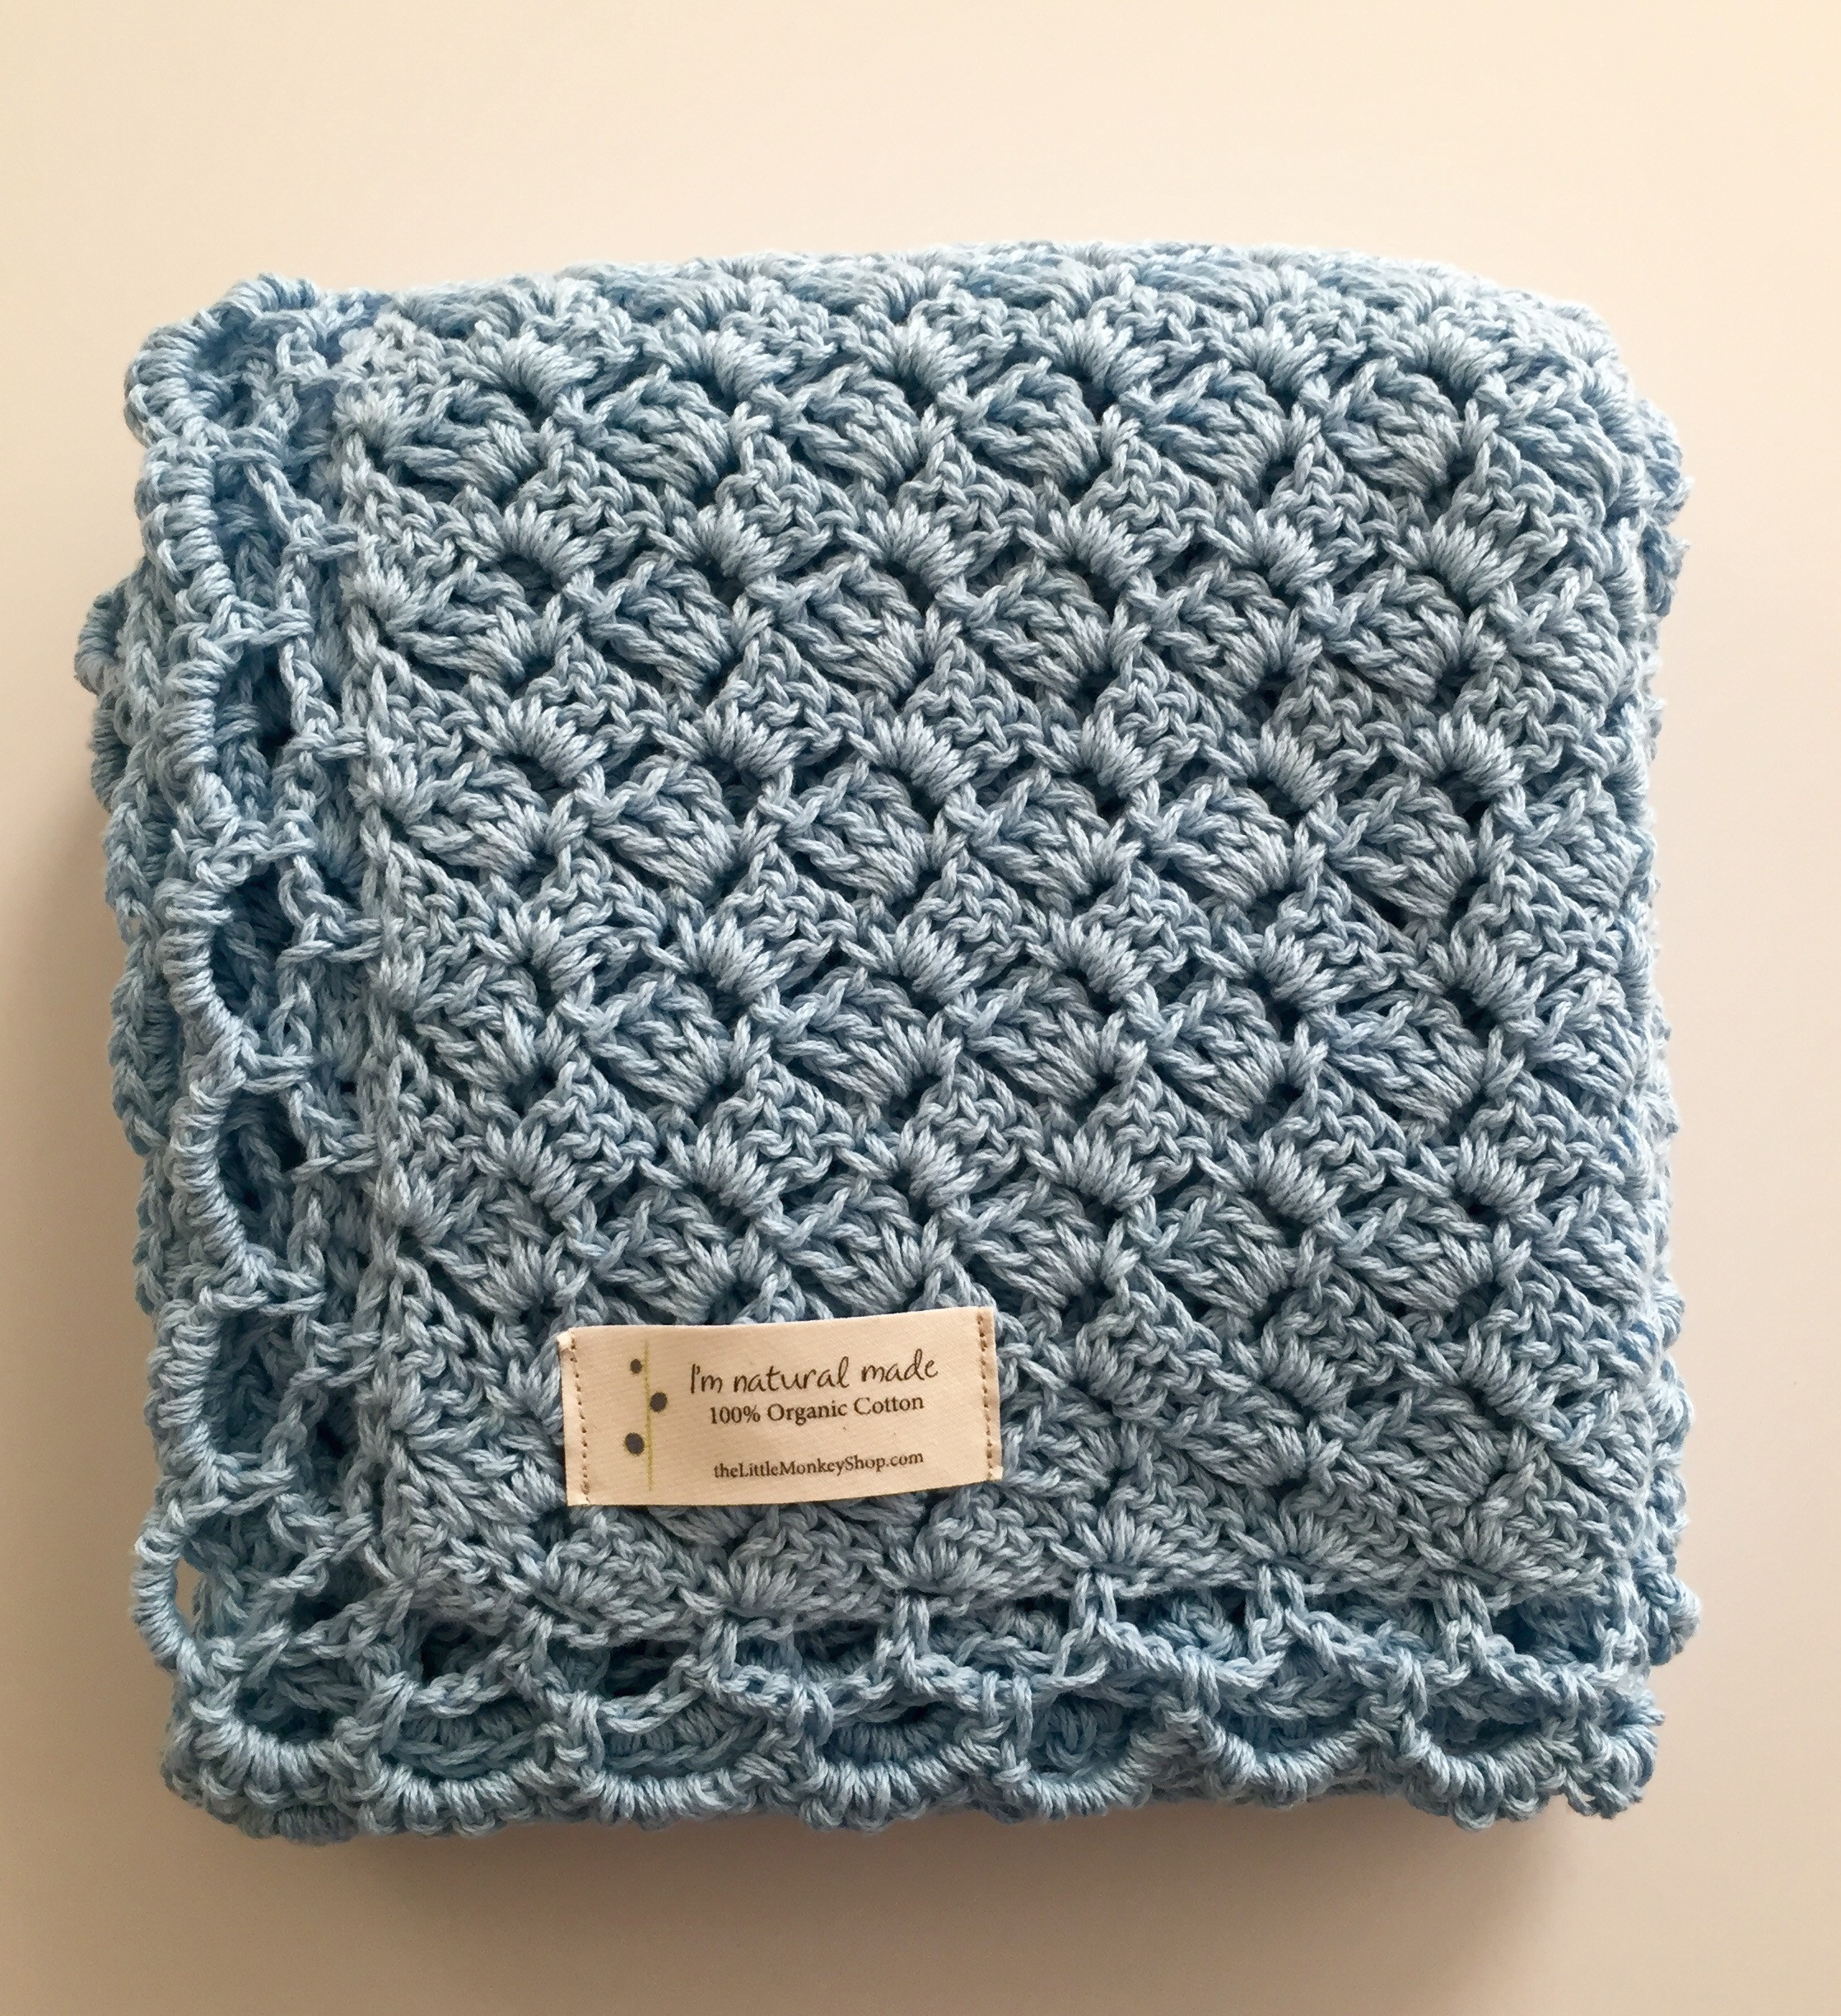 Baby Blanket Patterns Fresh Crochet Pattern Baby Blue Baby Blanket Of Delightful 50 Pictures Baby Blanket Patterns